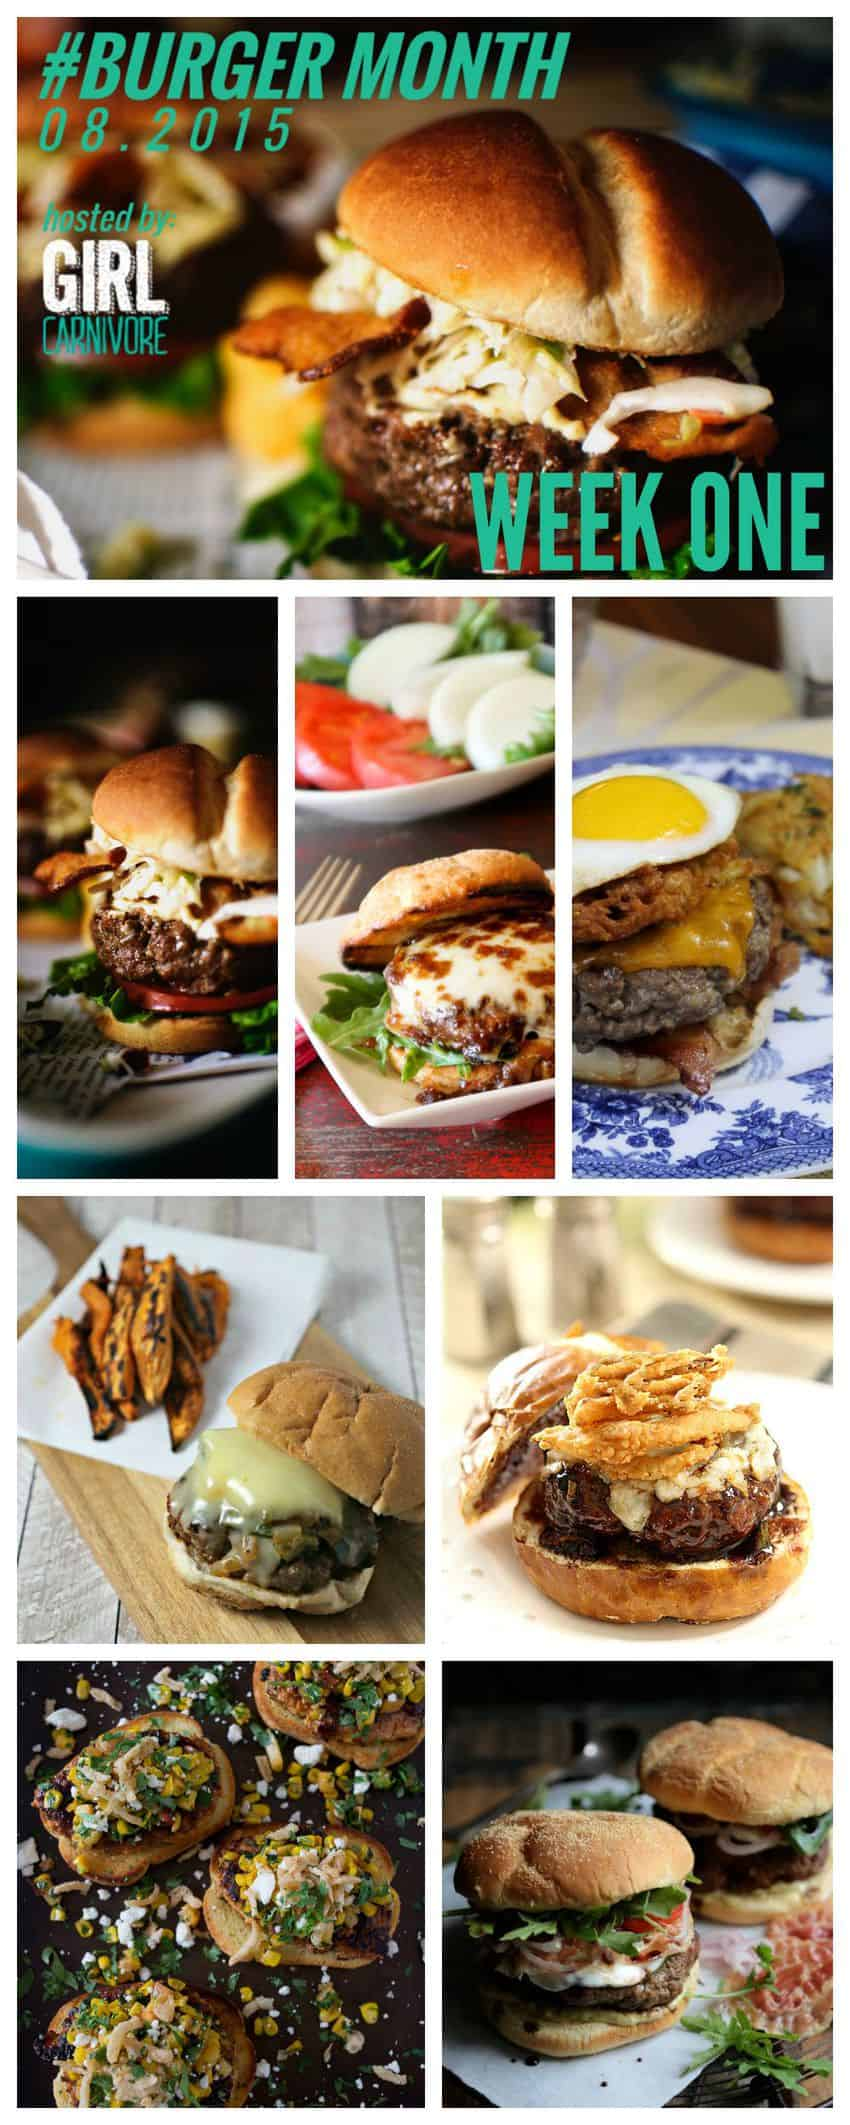 BURGER MONTH WEEK ONE ALL AUGUST LONG ON GIRLCARNIVORE